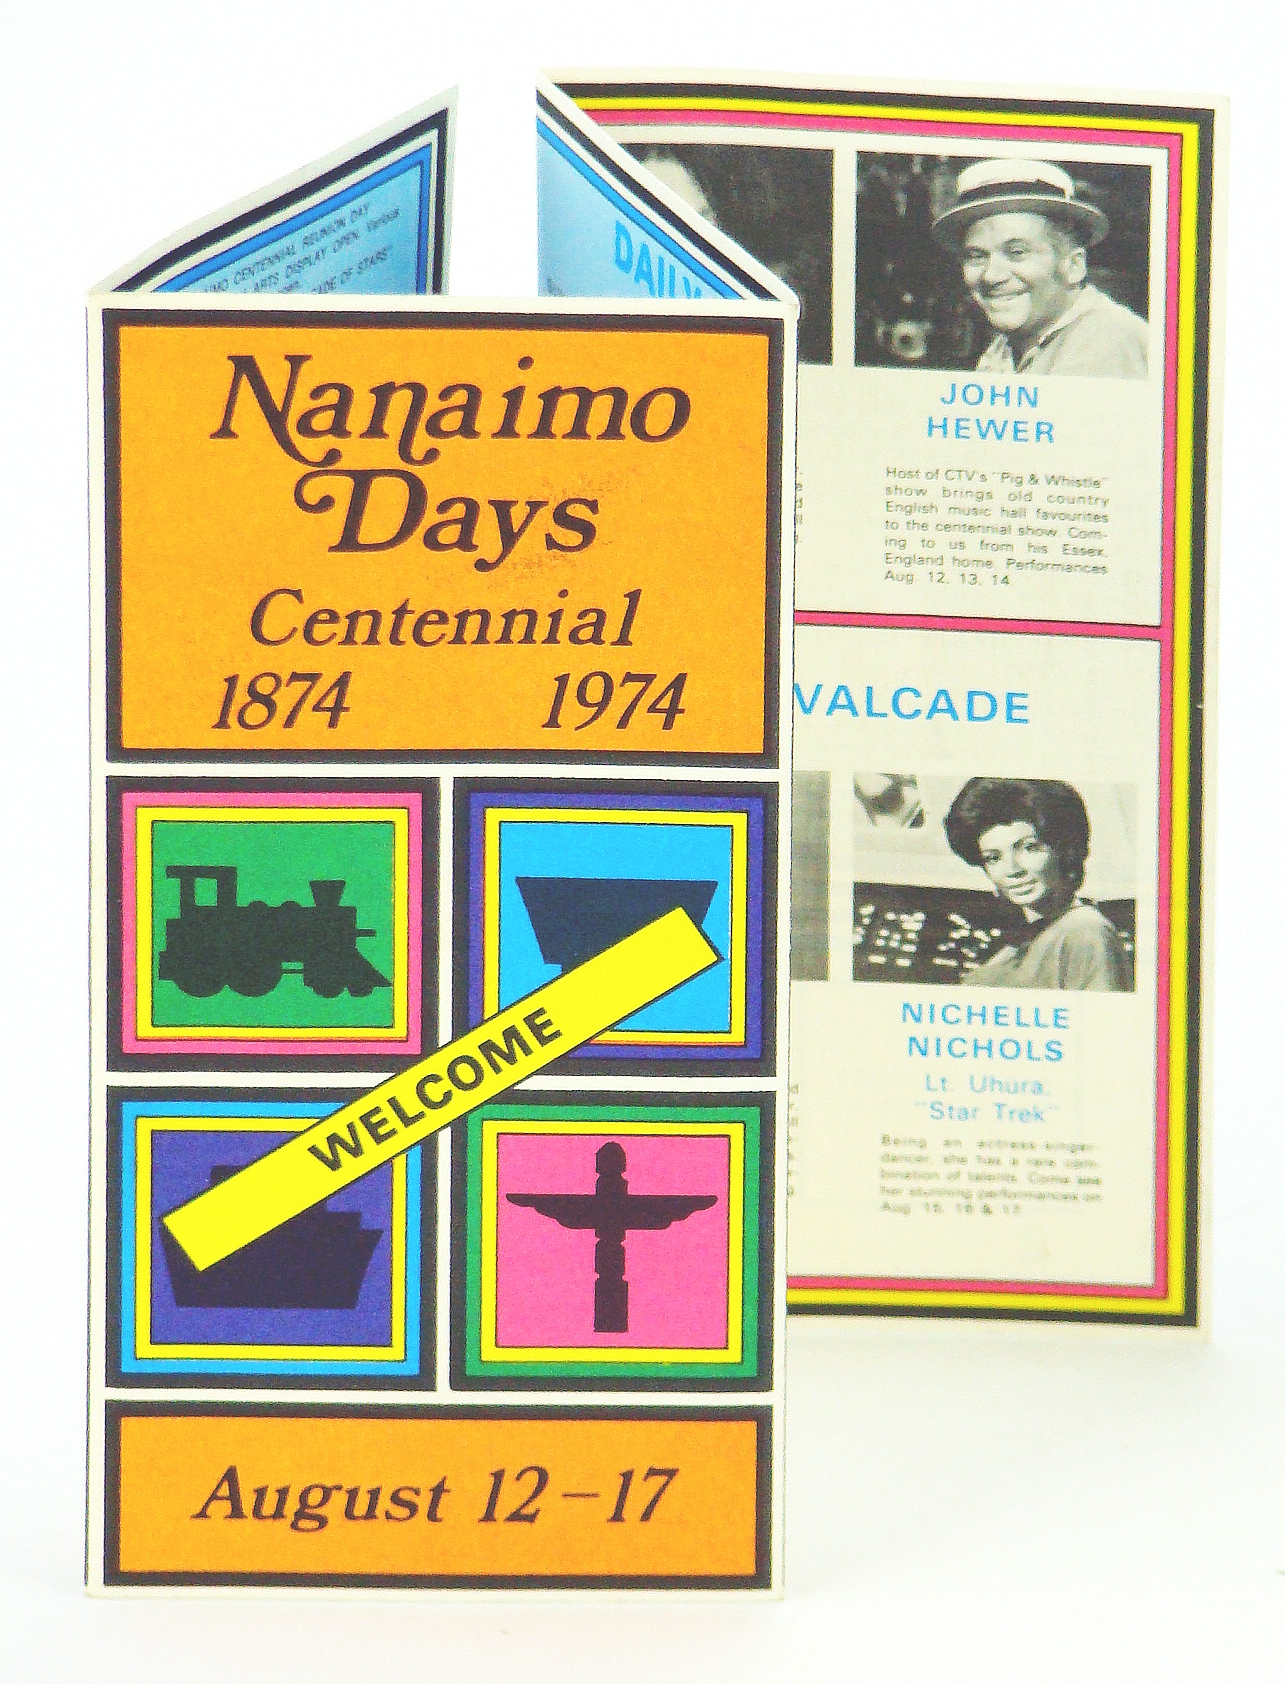 Image for Nanaimo Days Centennial 1874-1974, August 12-17, 1974 - Entertainment Schedule